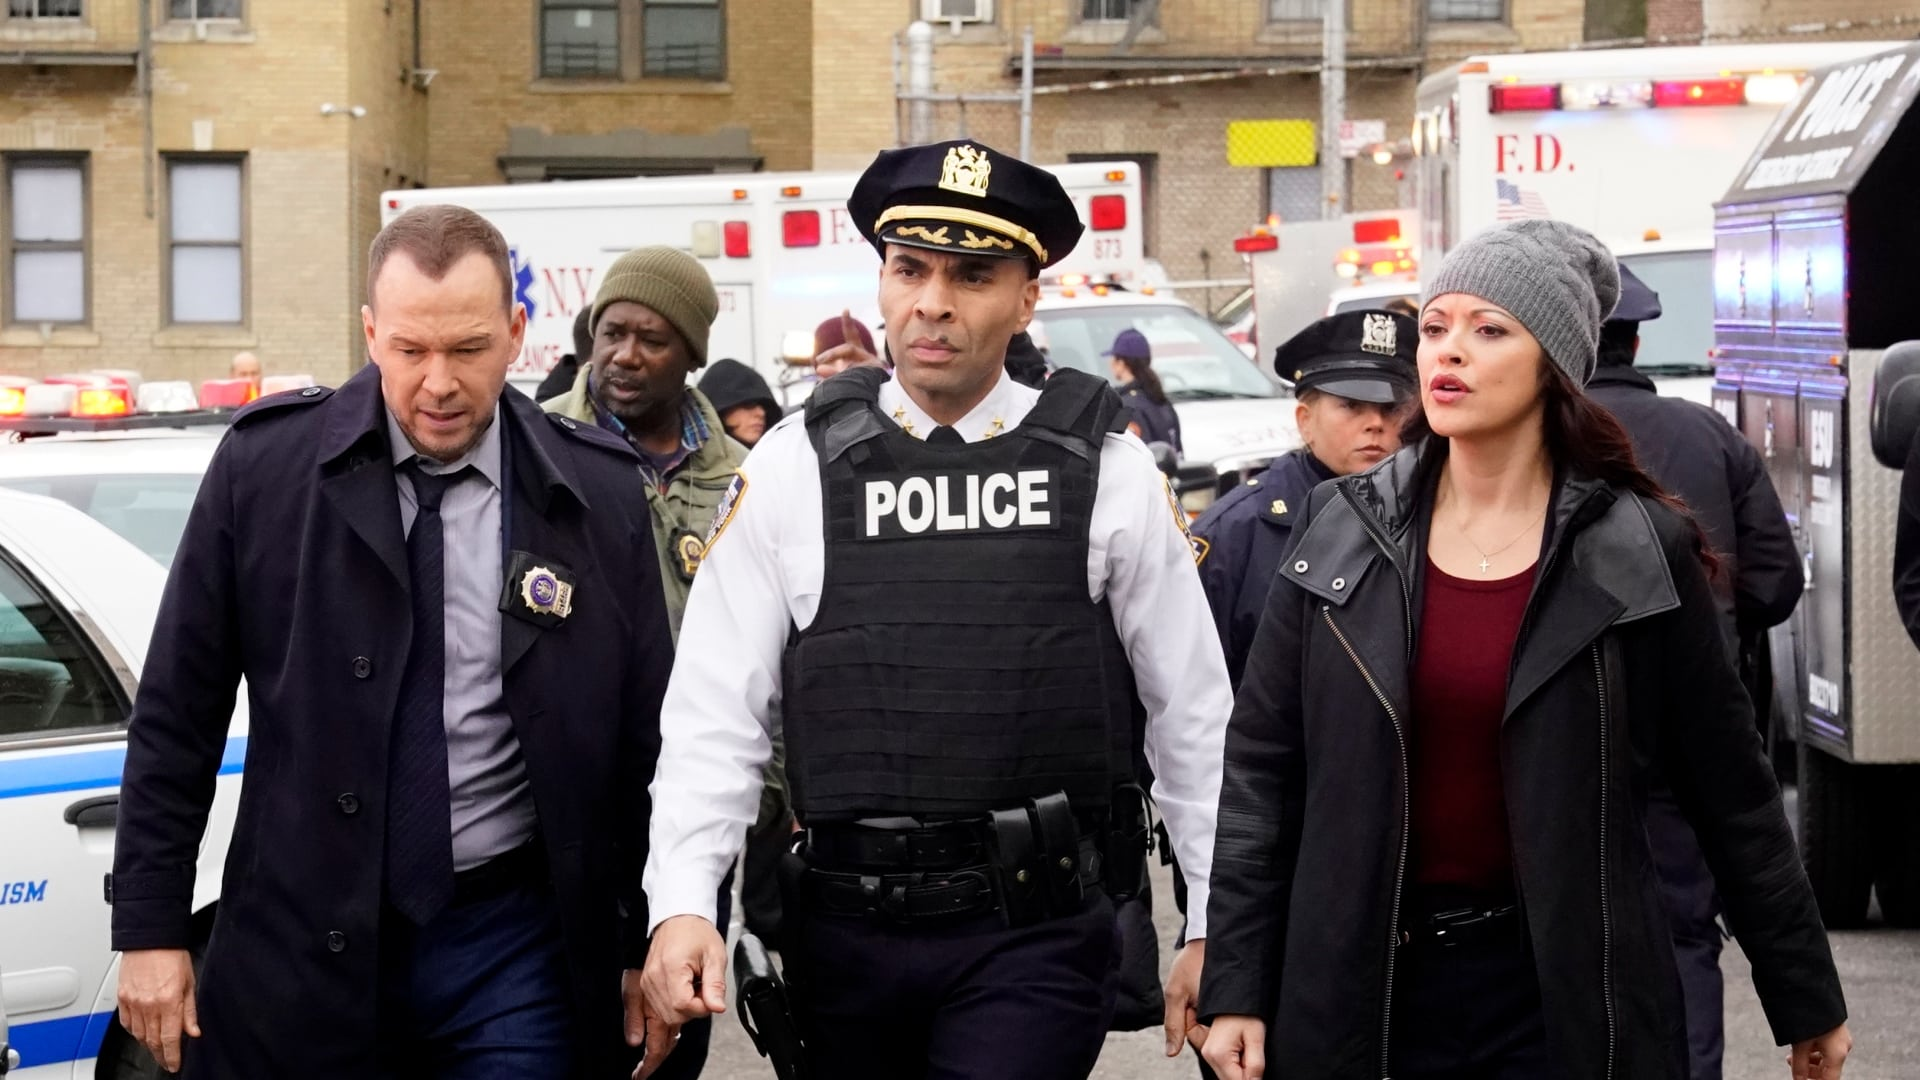 Blue Bloods - Season 8 Episode 14 : School of Hard Knocks